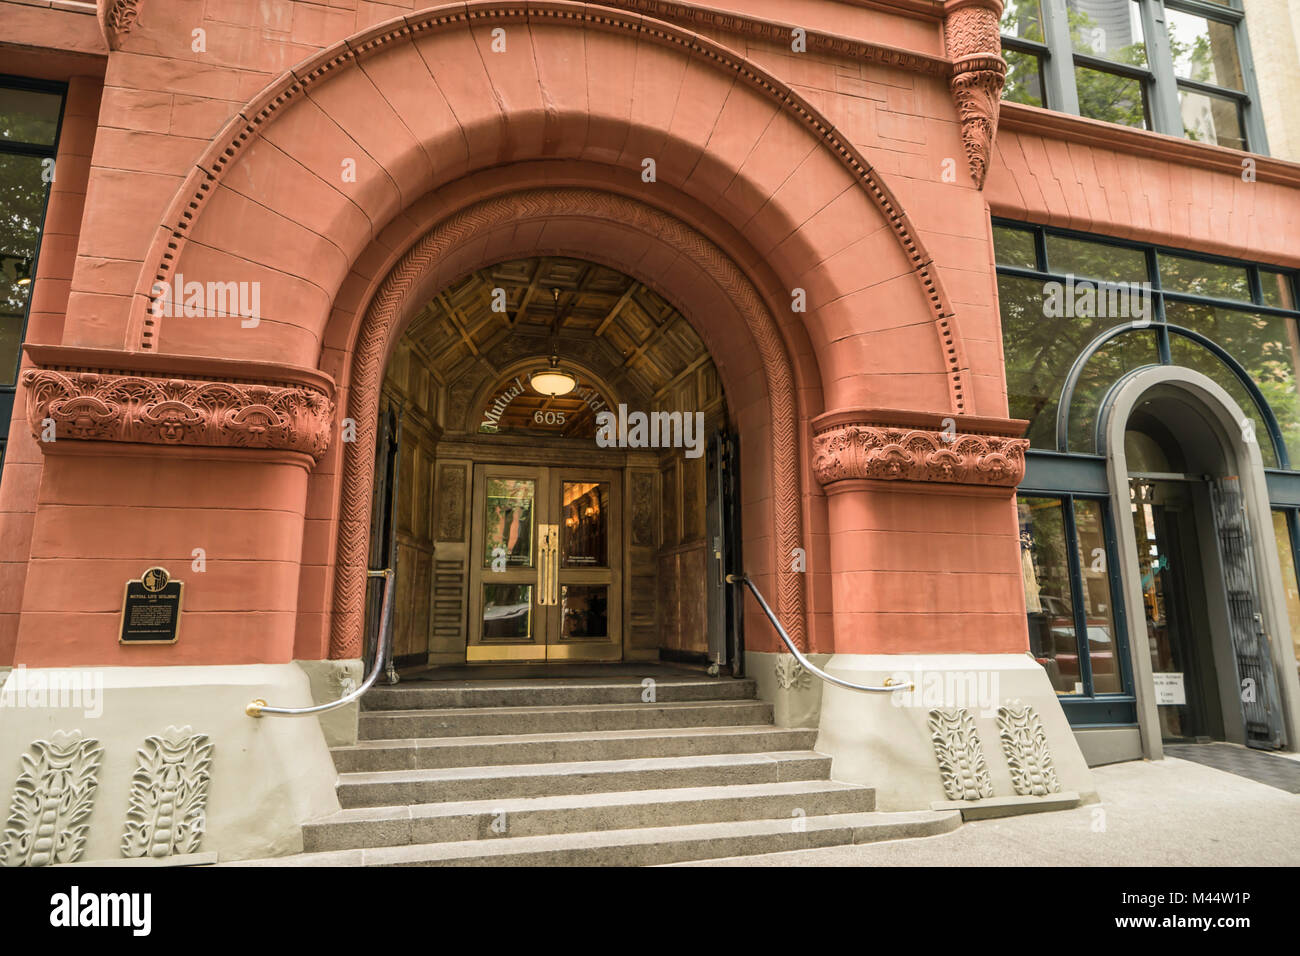 United States, Washington, Seattle, Pioneer Square, Mutual Life Building, Romanesque Revival architecture - Stock Image